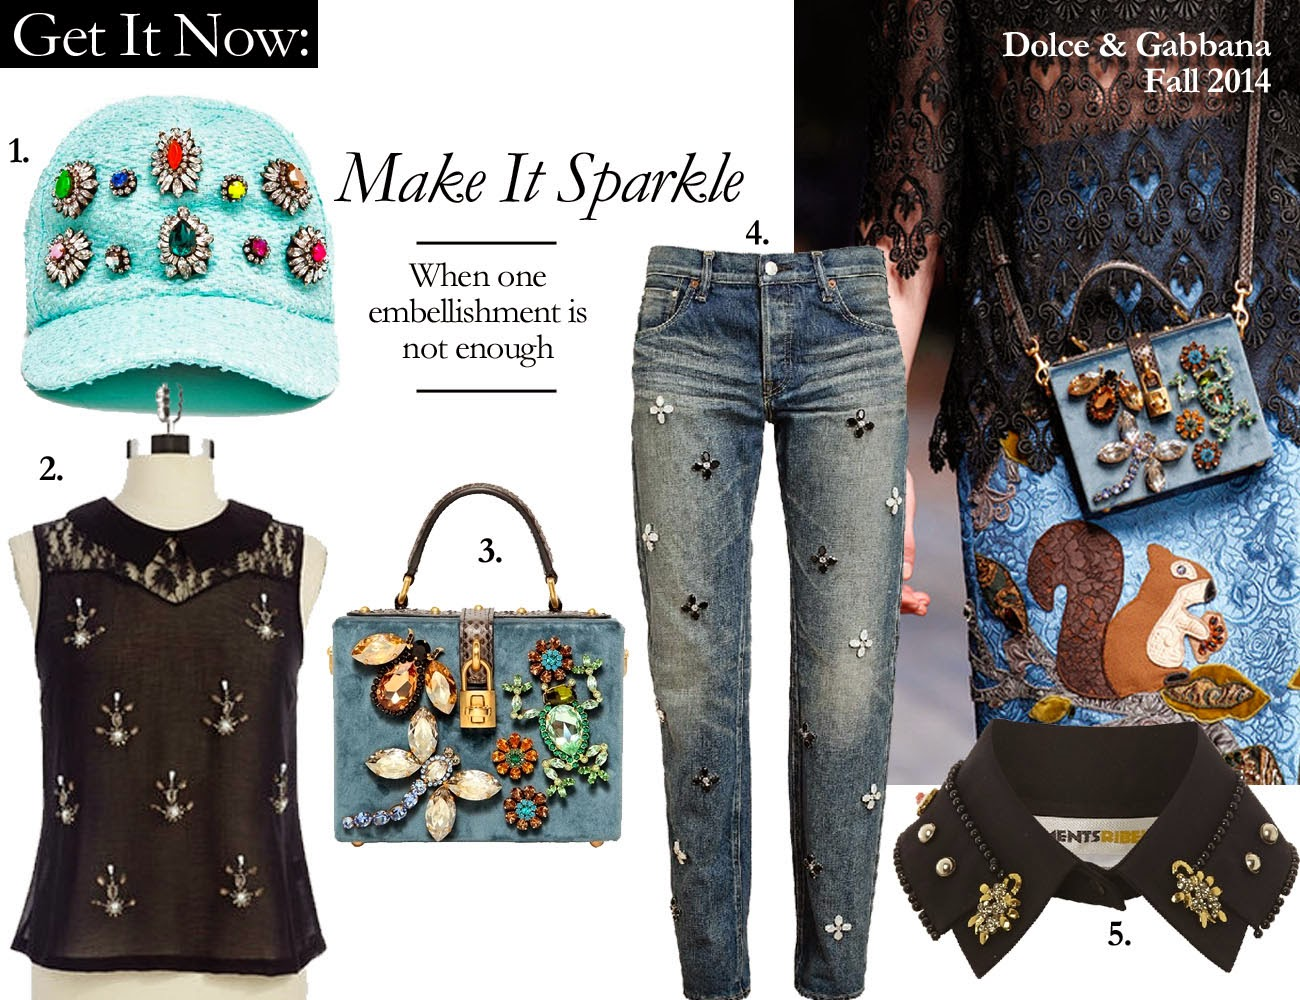 Get It Now: Make It Sparkle